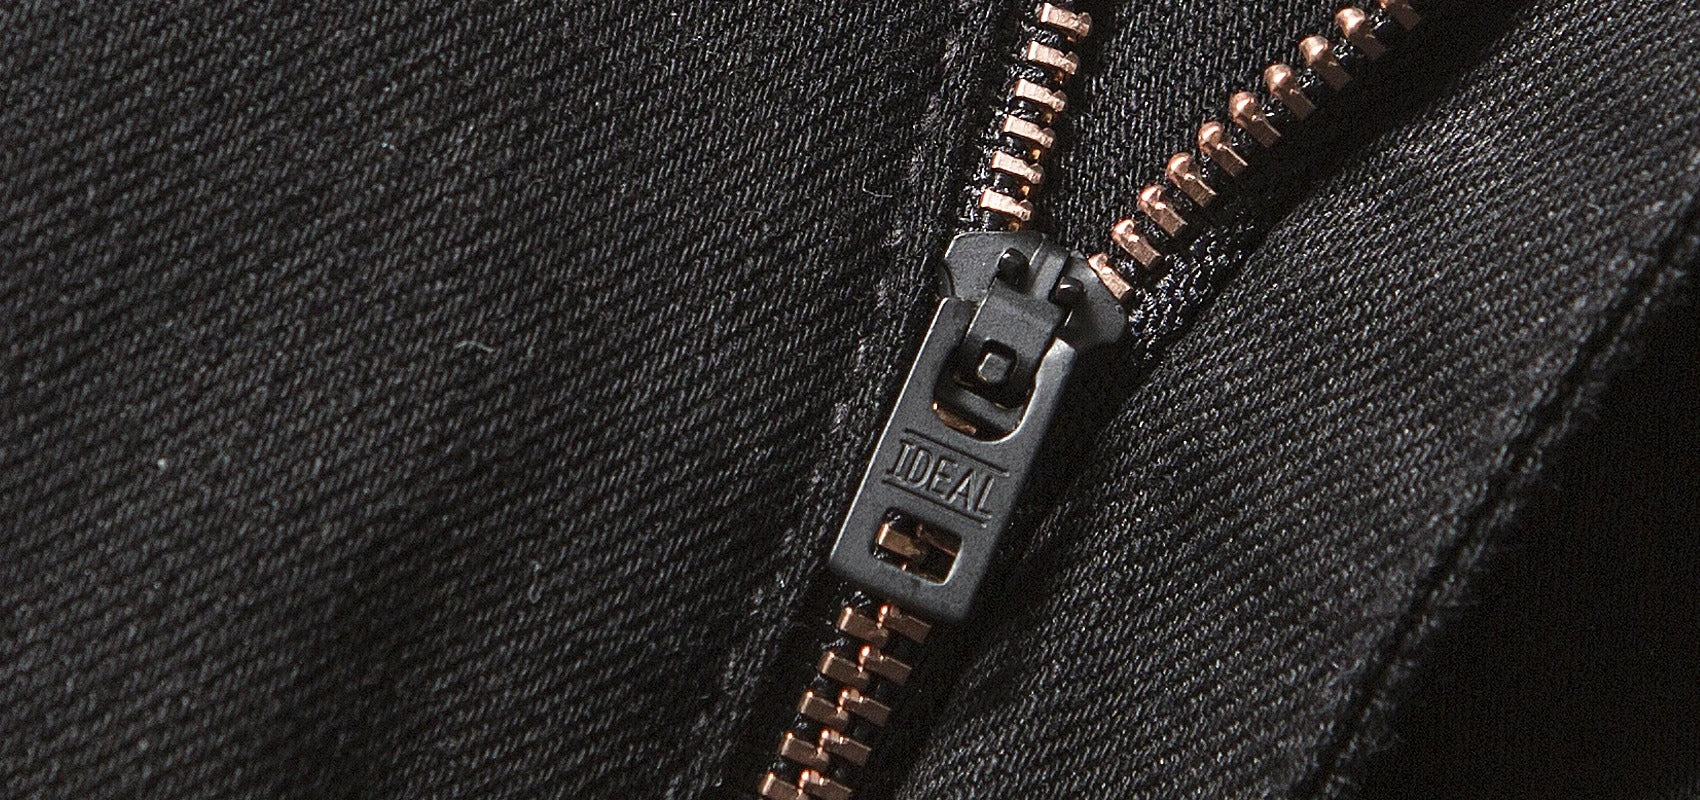 Locking Zippers